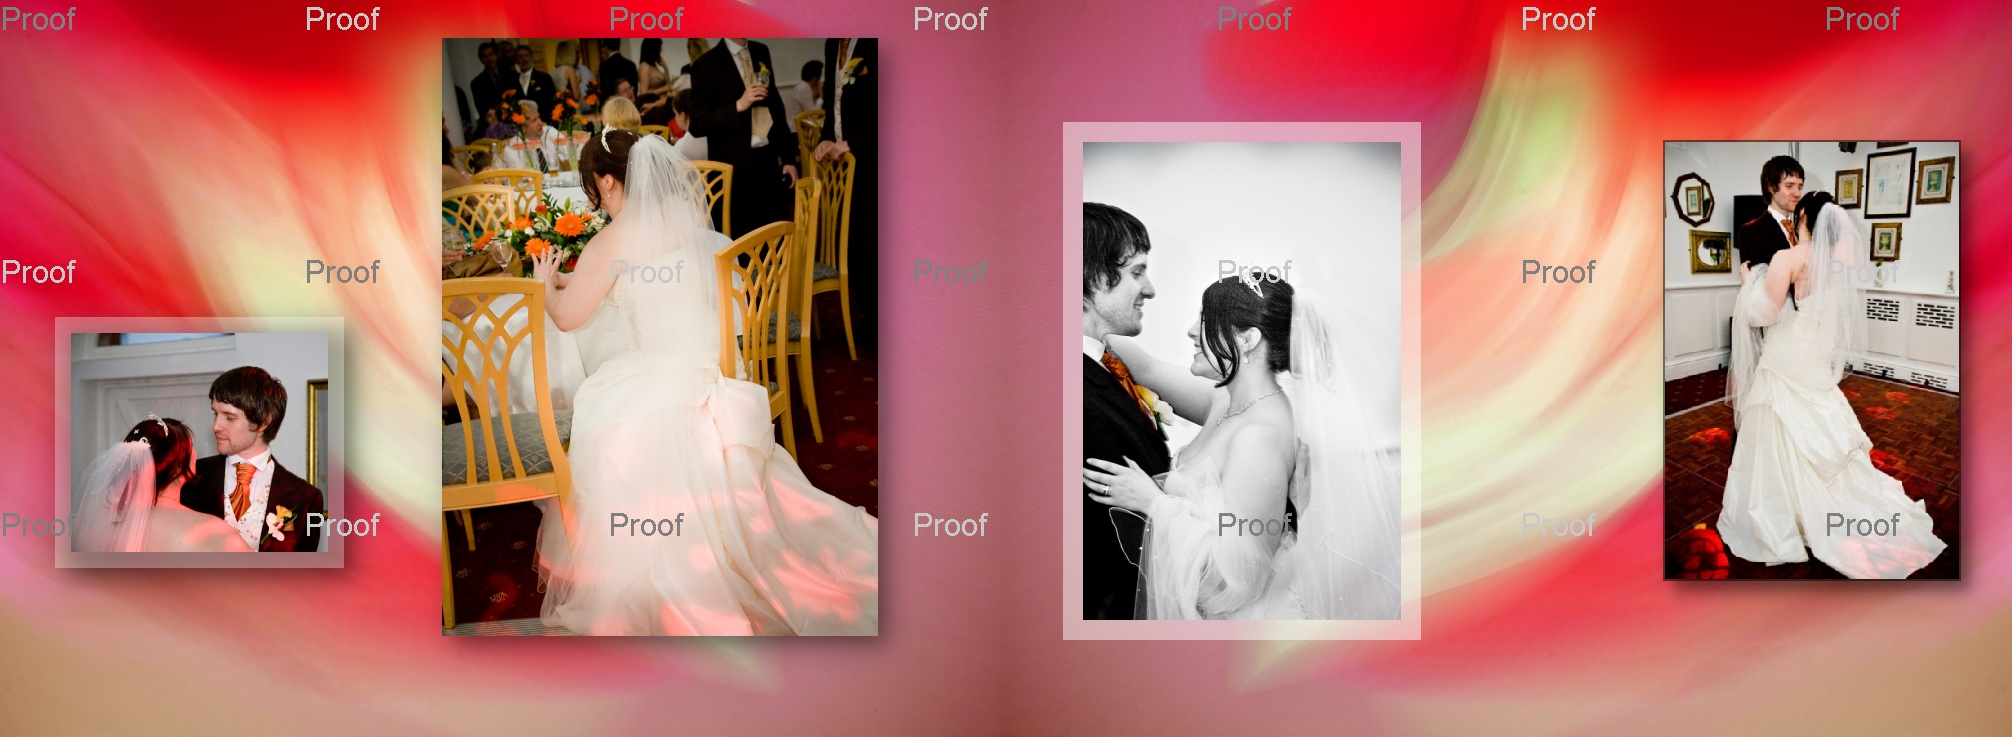 pages 76-77 storybook album showingn first dance pictures evening wedding reception in Manchester